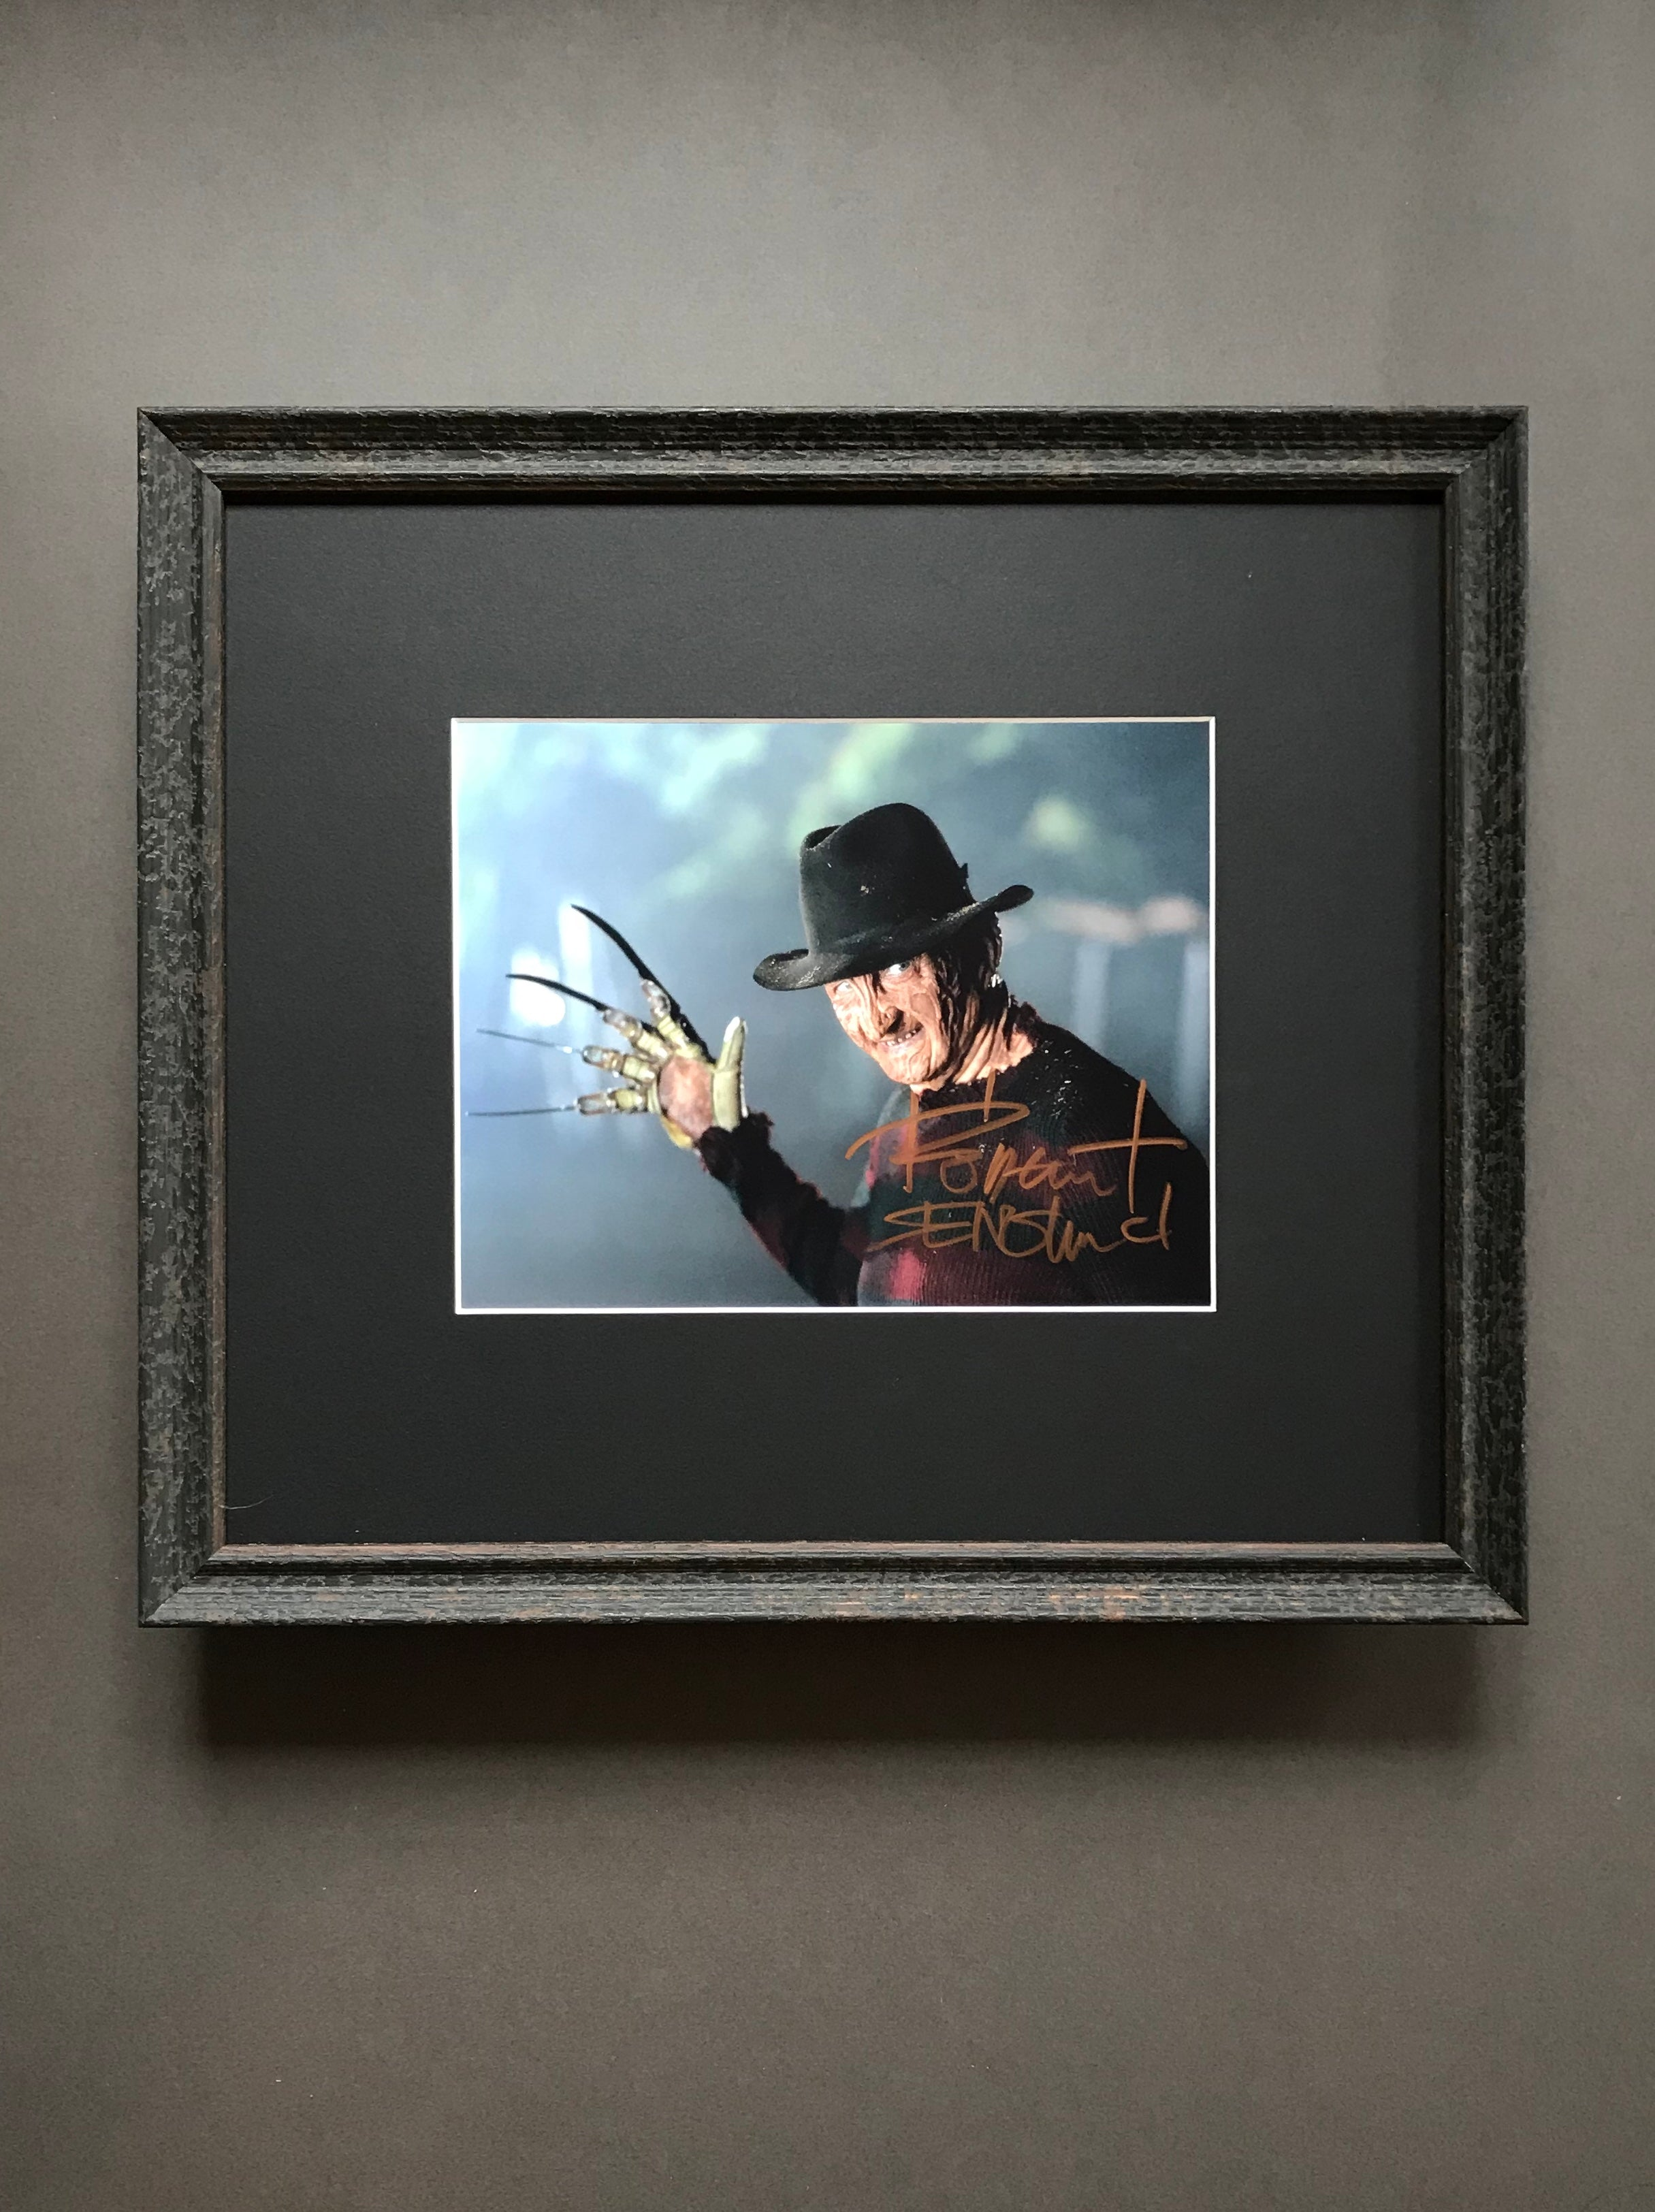 A Nightmare on Elm Street (1984 -) - A Framed Autographed Still